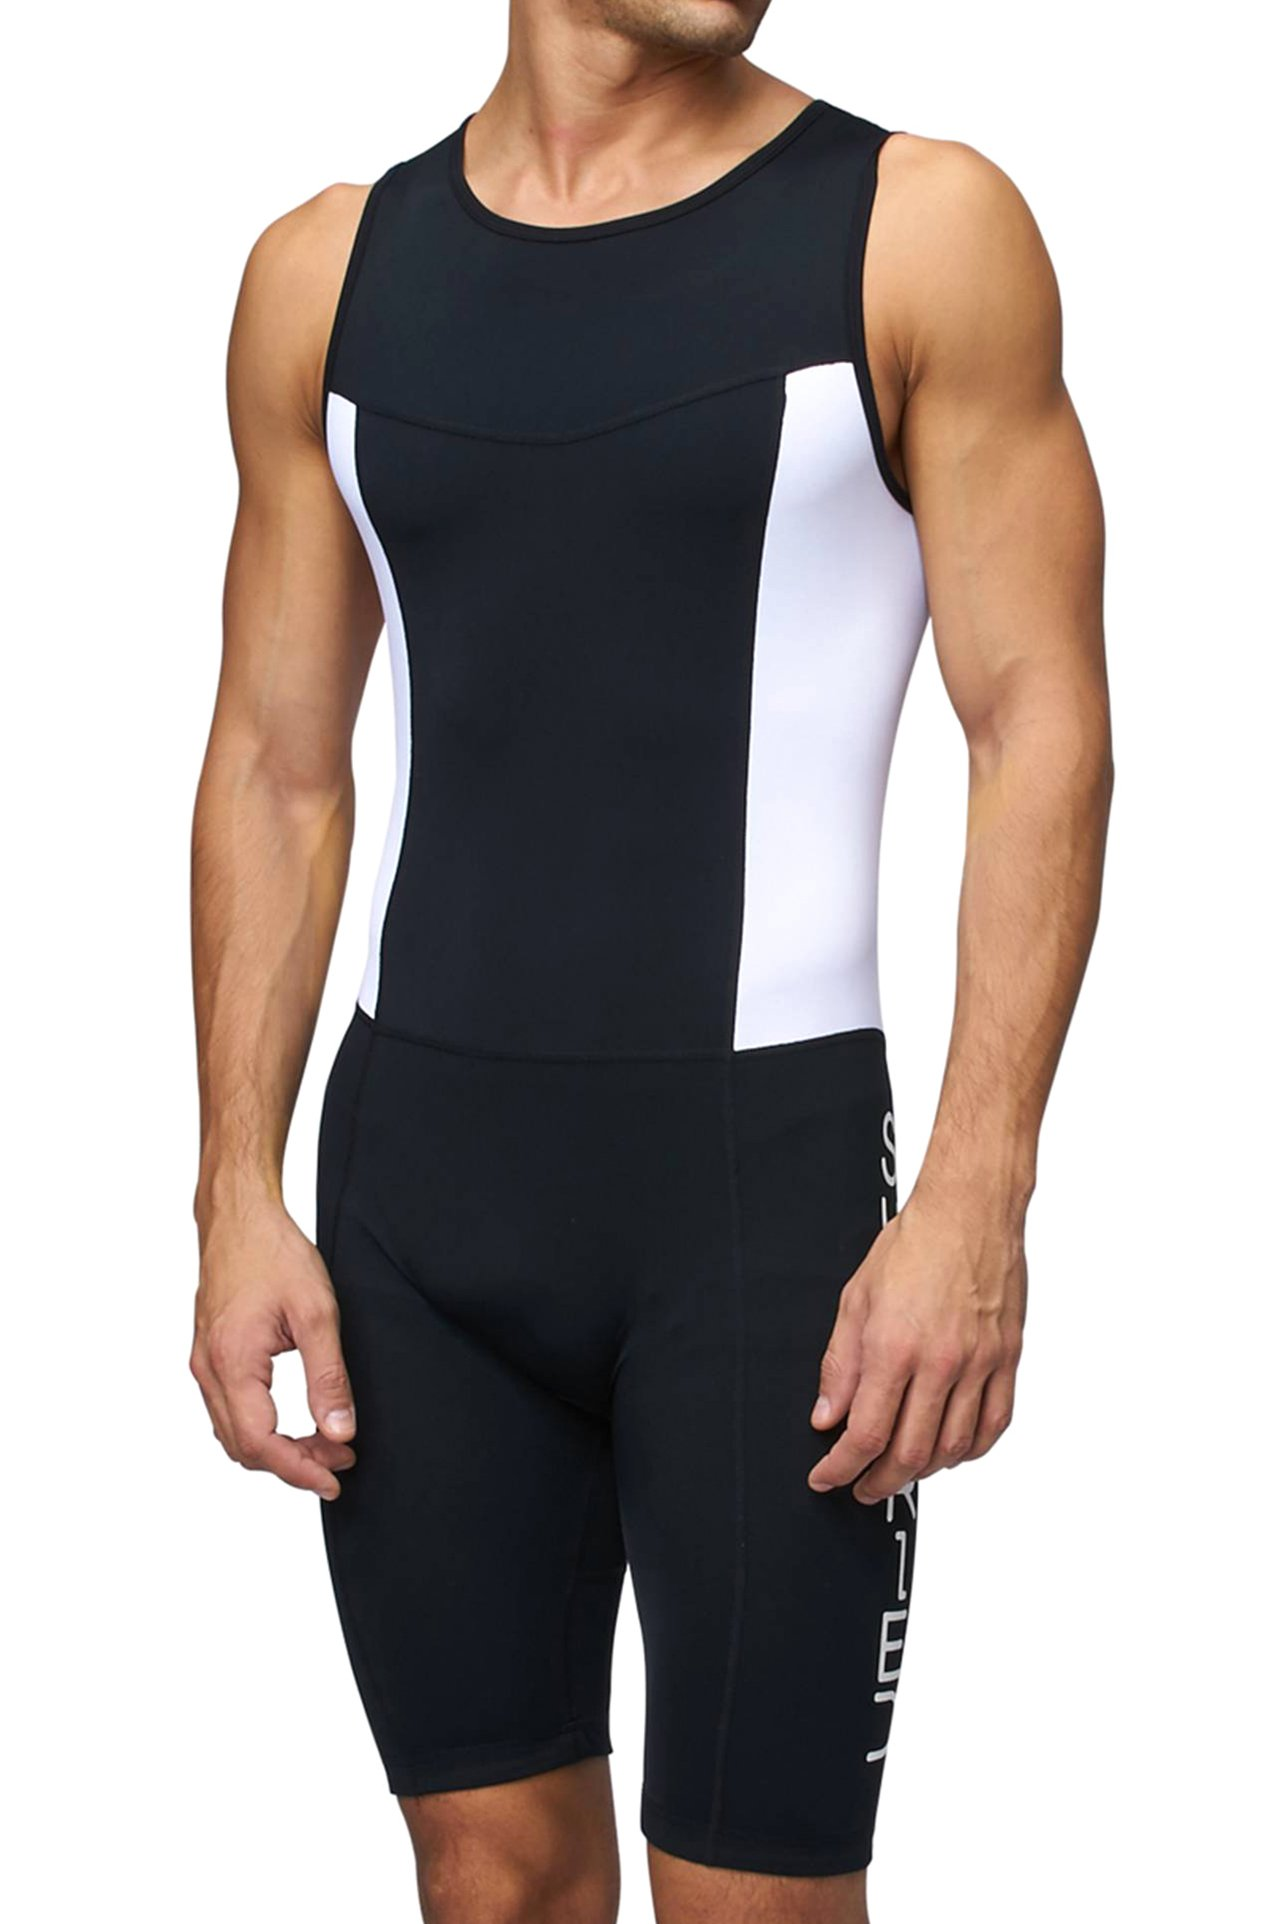 Sundried Mens Premium Padded Triathlon Tri Suit Compression Duathlon Running Swimming Cycling Skin Suit (XX-Large)